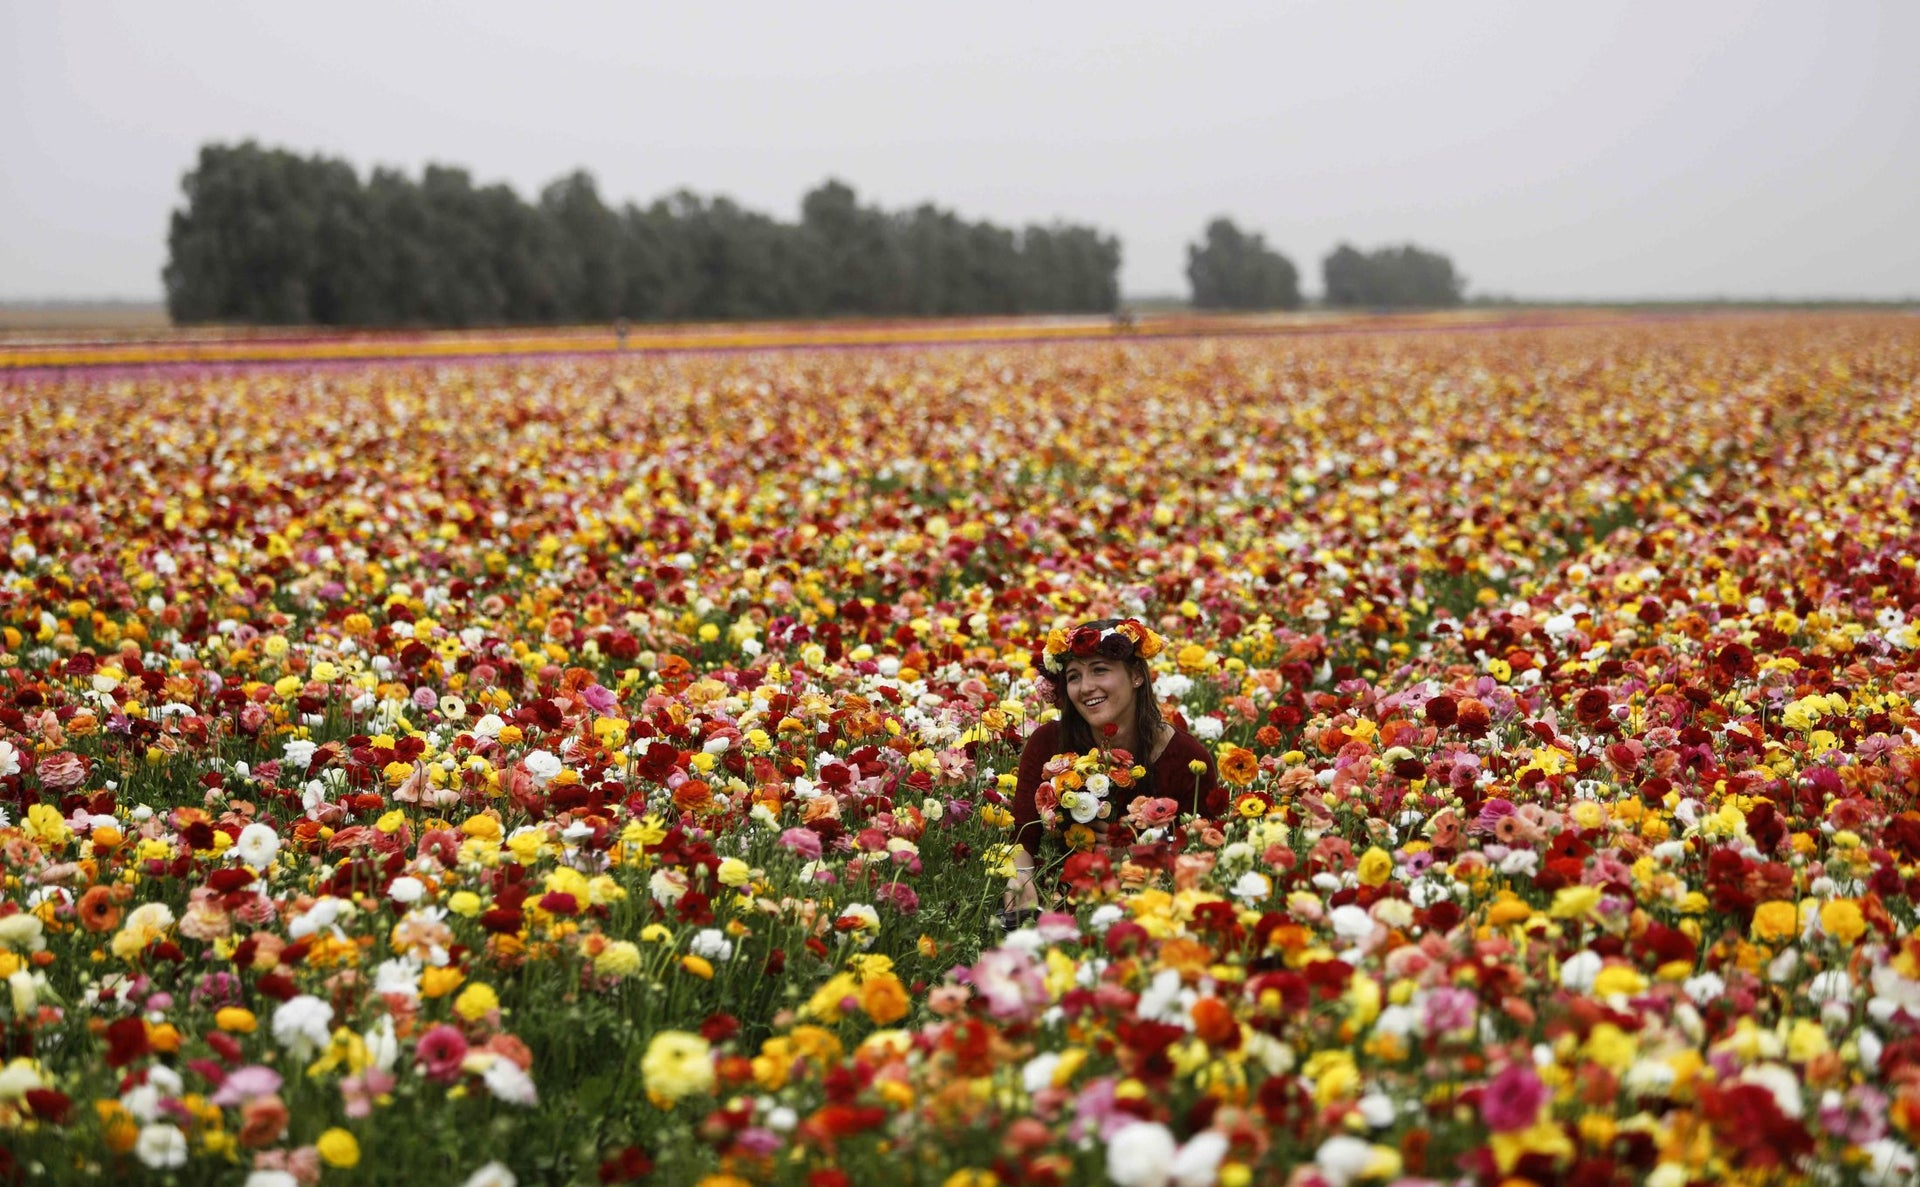 An Israeli woman sits in a field of Ranunculus flowers wearing a laurel upon her head, in the southern Israeli Kibbutz of Nir Yitzhak, located along the Israeli-Gaza Strip border, during the Jewish holiday of Pesach (Passover) on April 12, 2017.